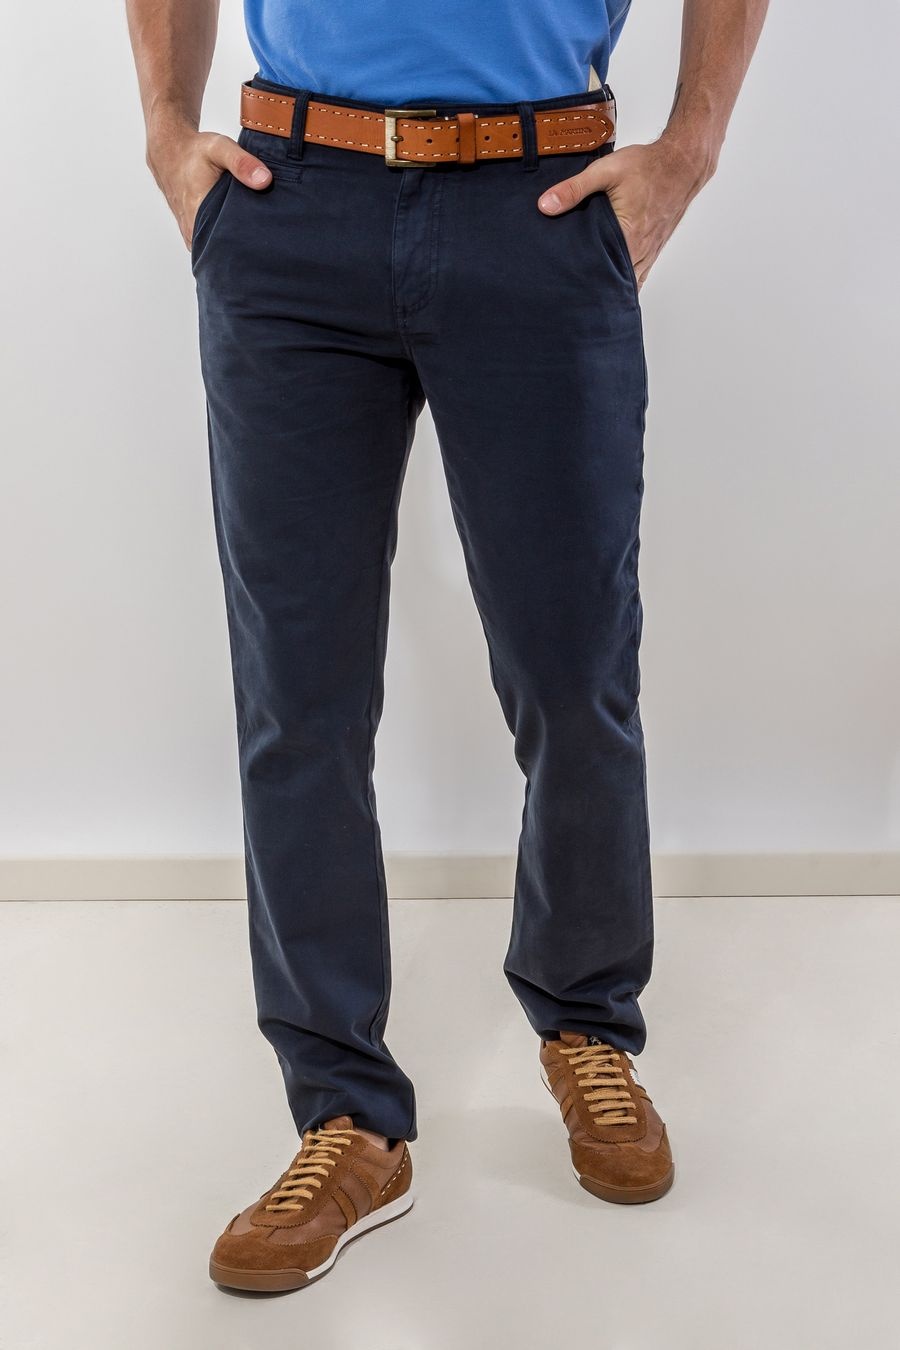 PANTALON-PA-BASIC-REGULAR-MARINO